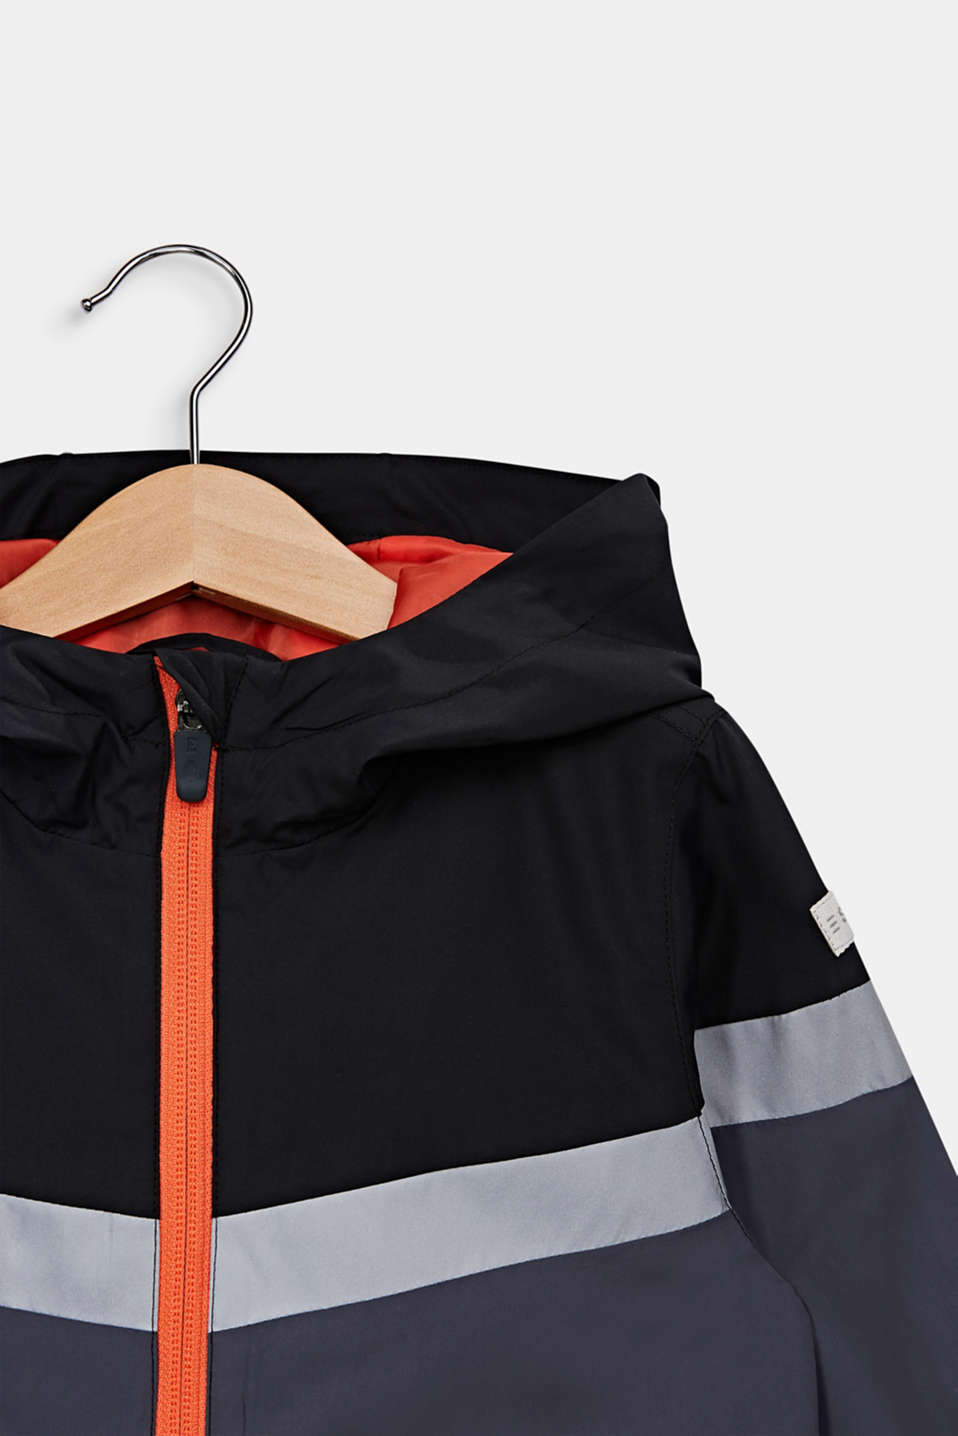 Reflective windbreaker with a hood, ANTHRACITE, detail image number 2